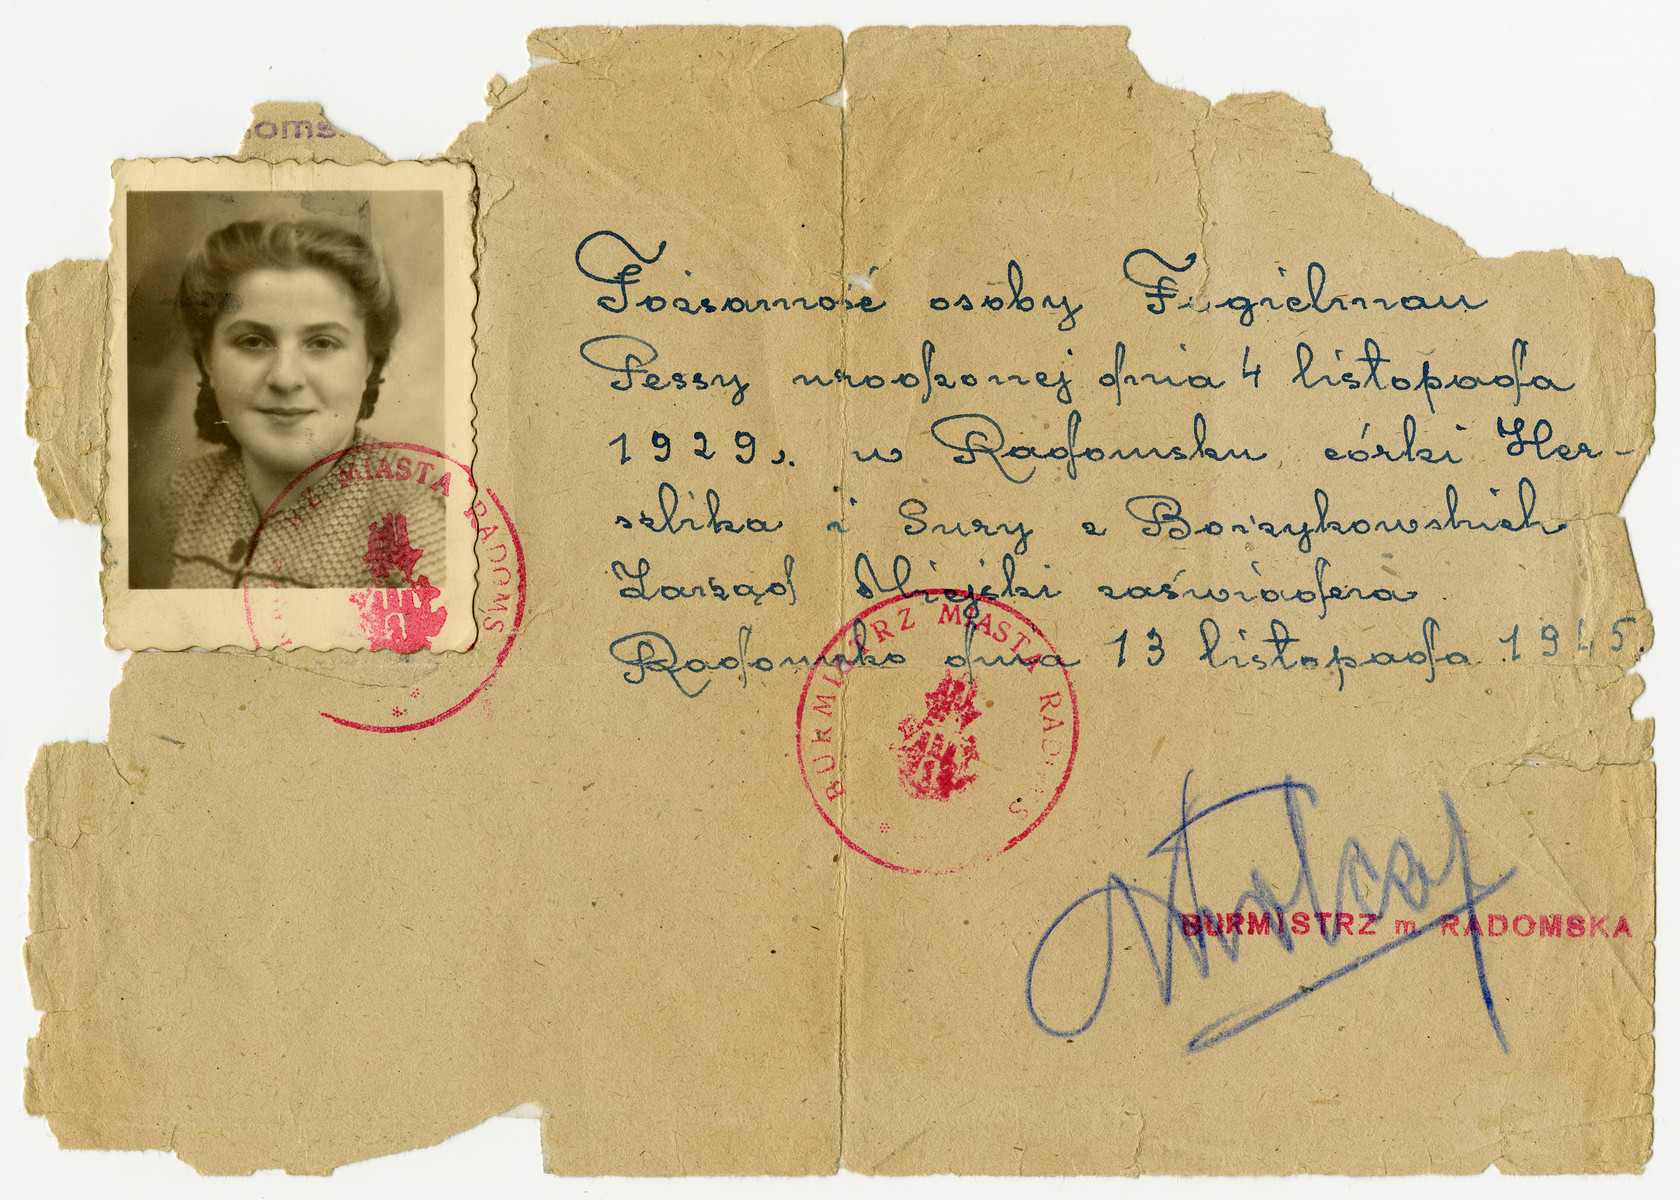 A post-war official Polish identification document issued to Pola Fogelman signed by the mayor of Radomsko.